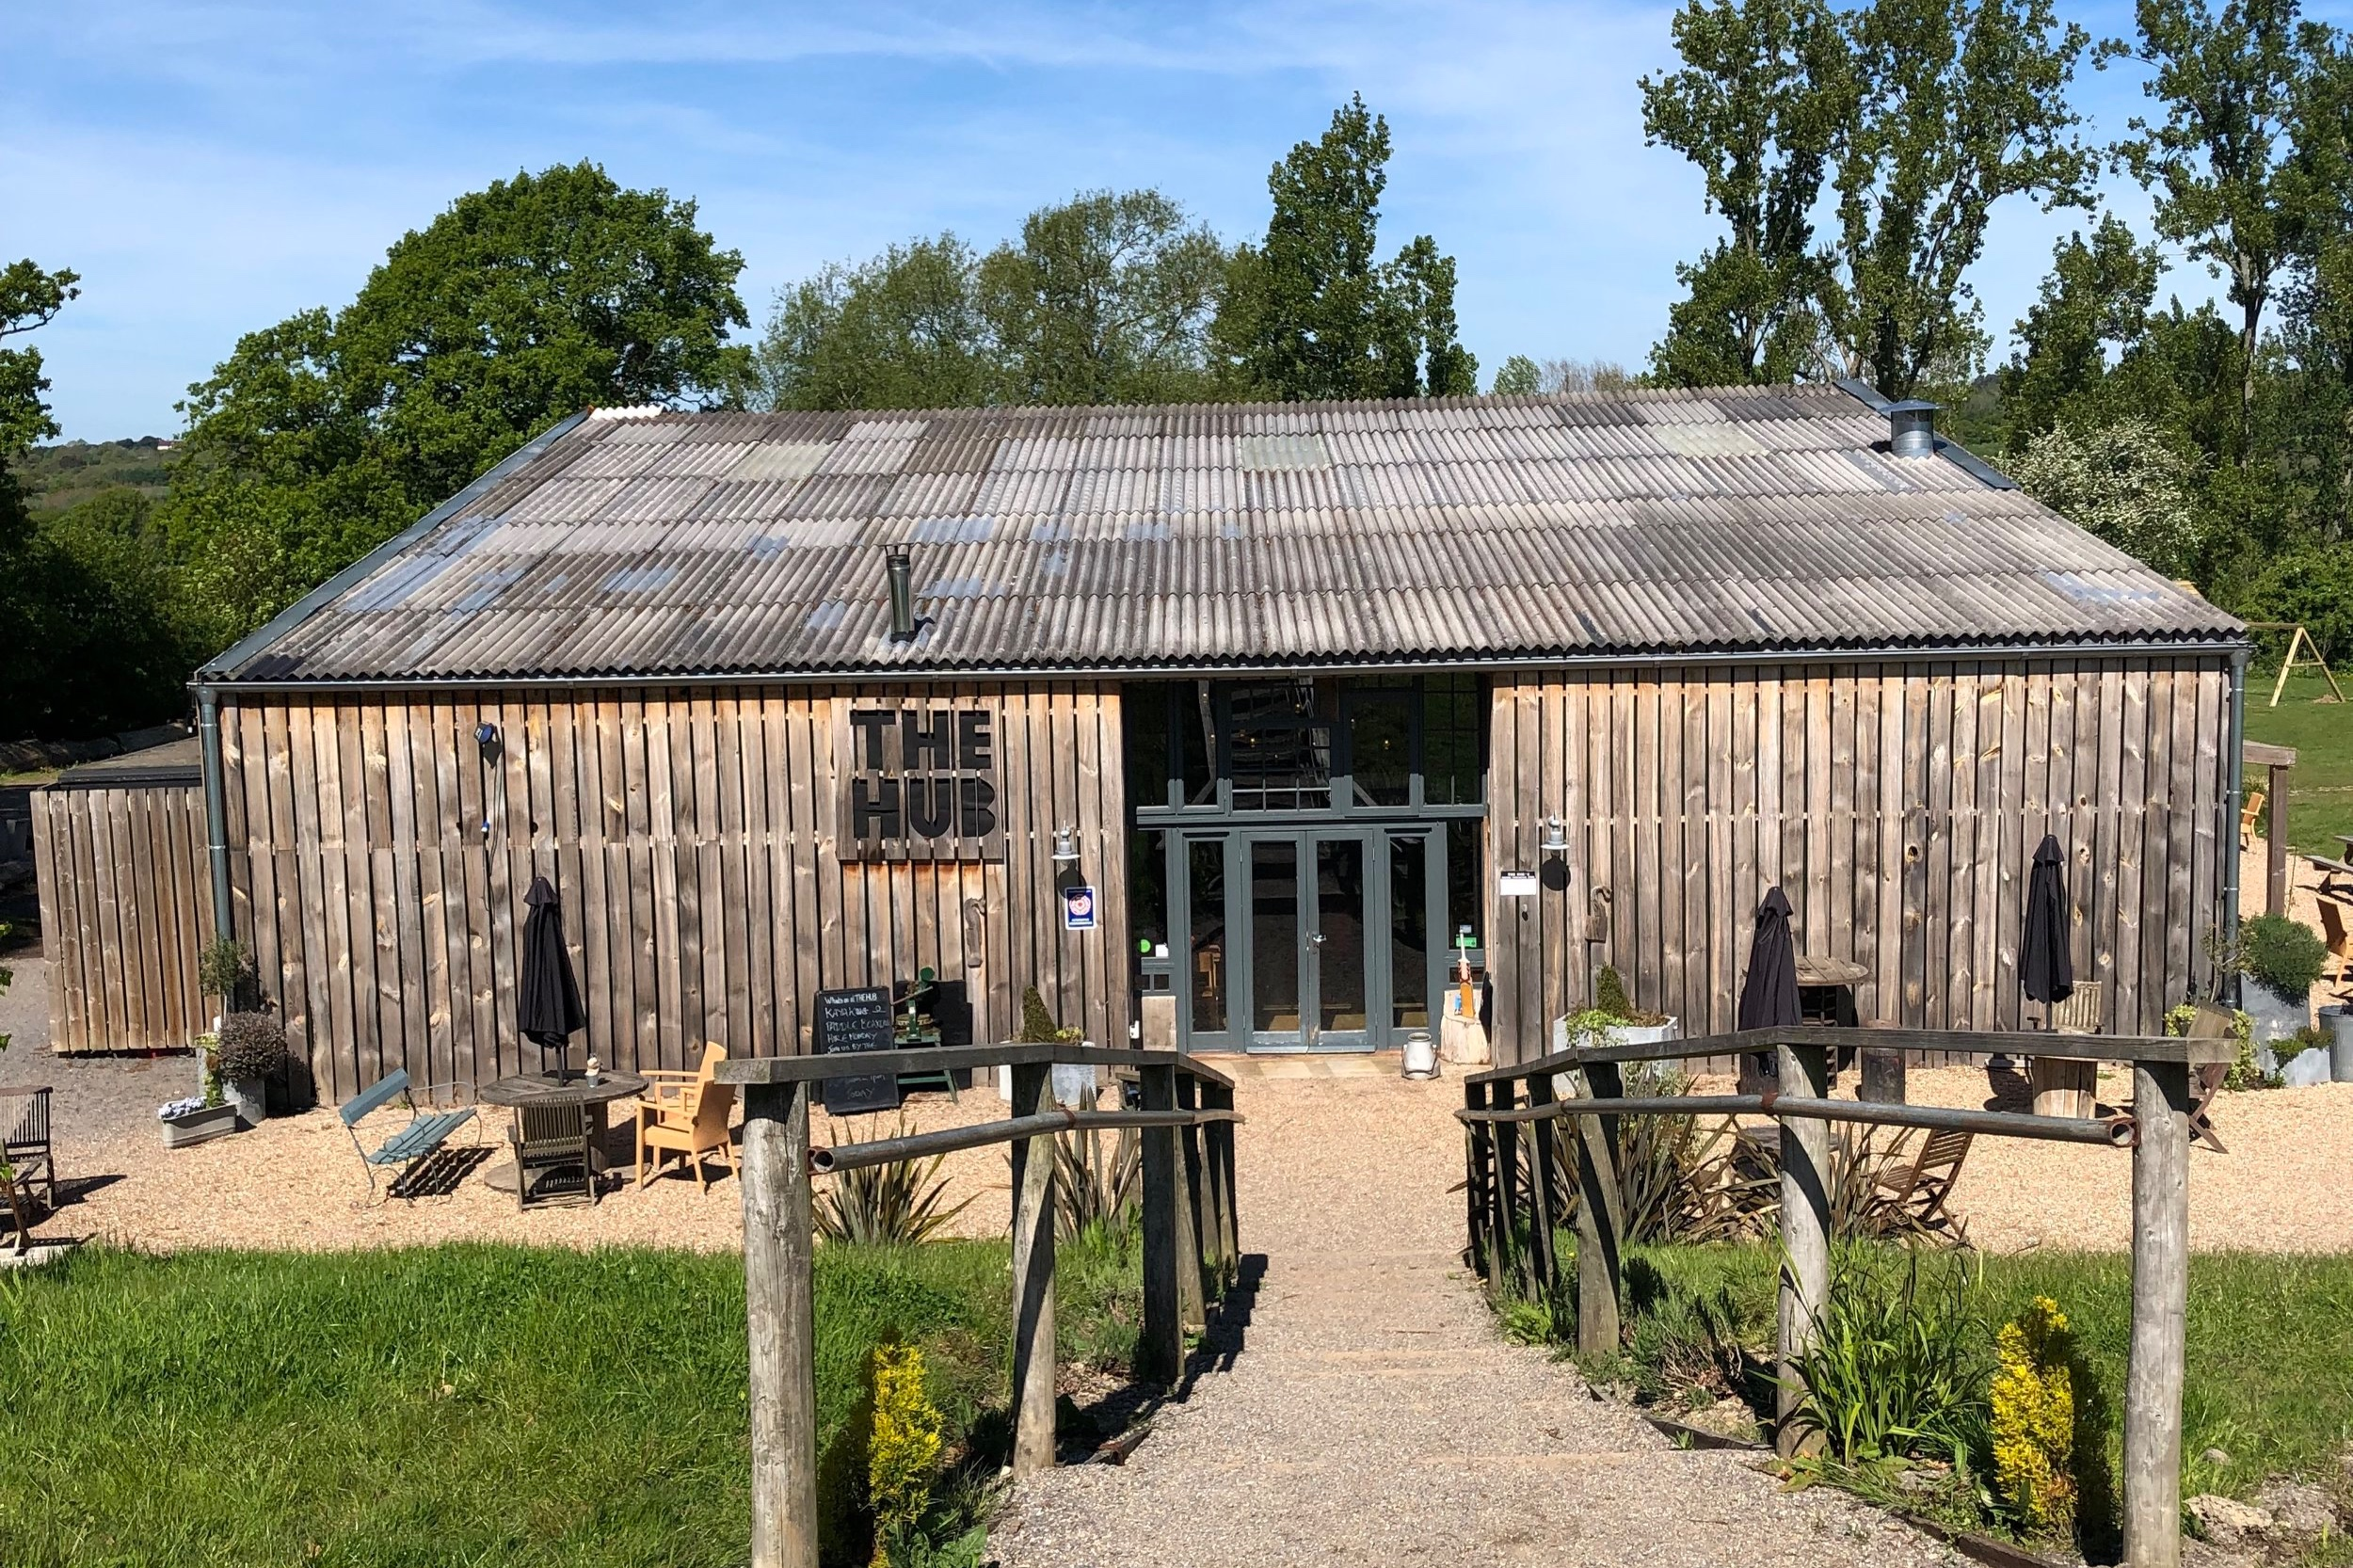 The Hub, Bodiam - The Hub Quarry Farm, Bodiam, Robertsbridge TN32 5RA